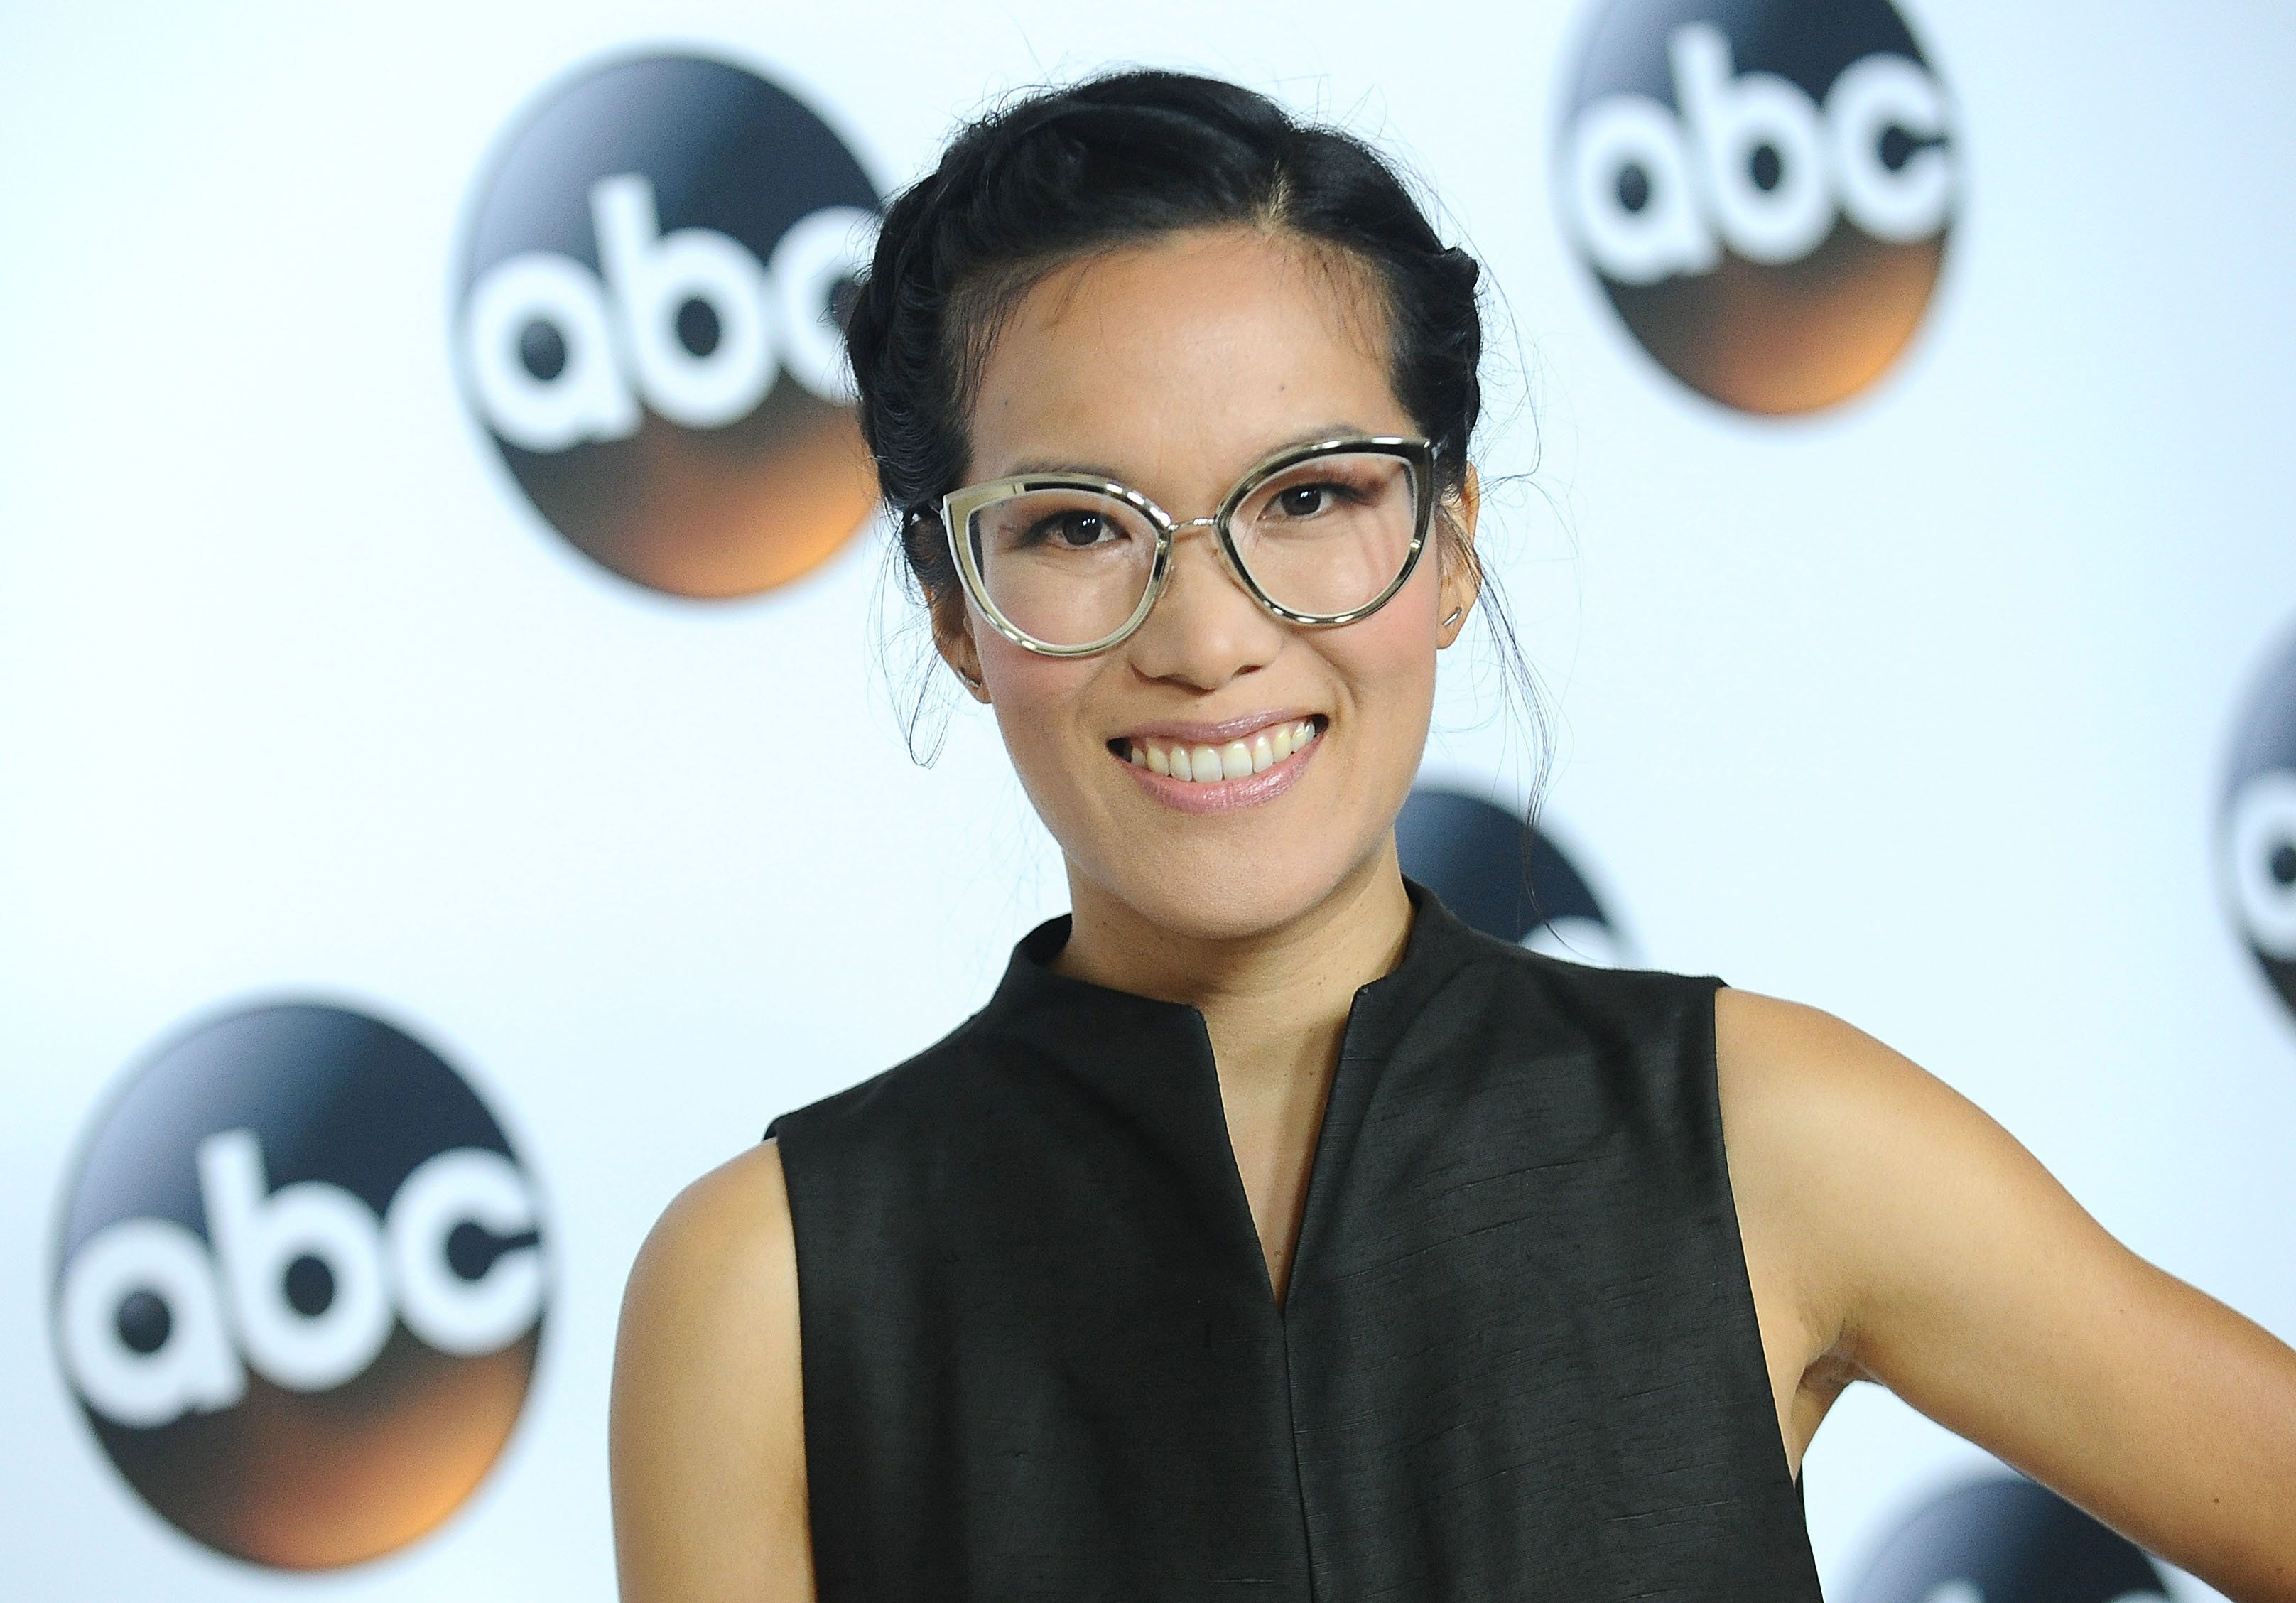 BEVERLY HILLS, CA - AUGUST 06:  Actress Ali Wong attends the Disney ABC Television Group TCA summer press tour at The Beverly Hilton Hotel on August 6, 2017 in Beverly Hills, California.  (Photo by Jason LaVeris/FilmMagic)